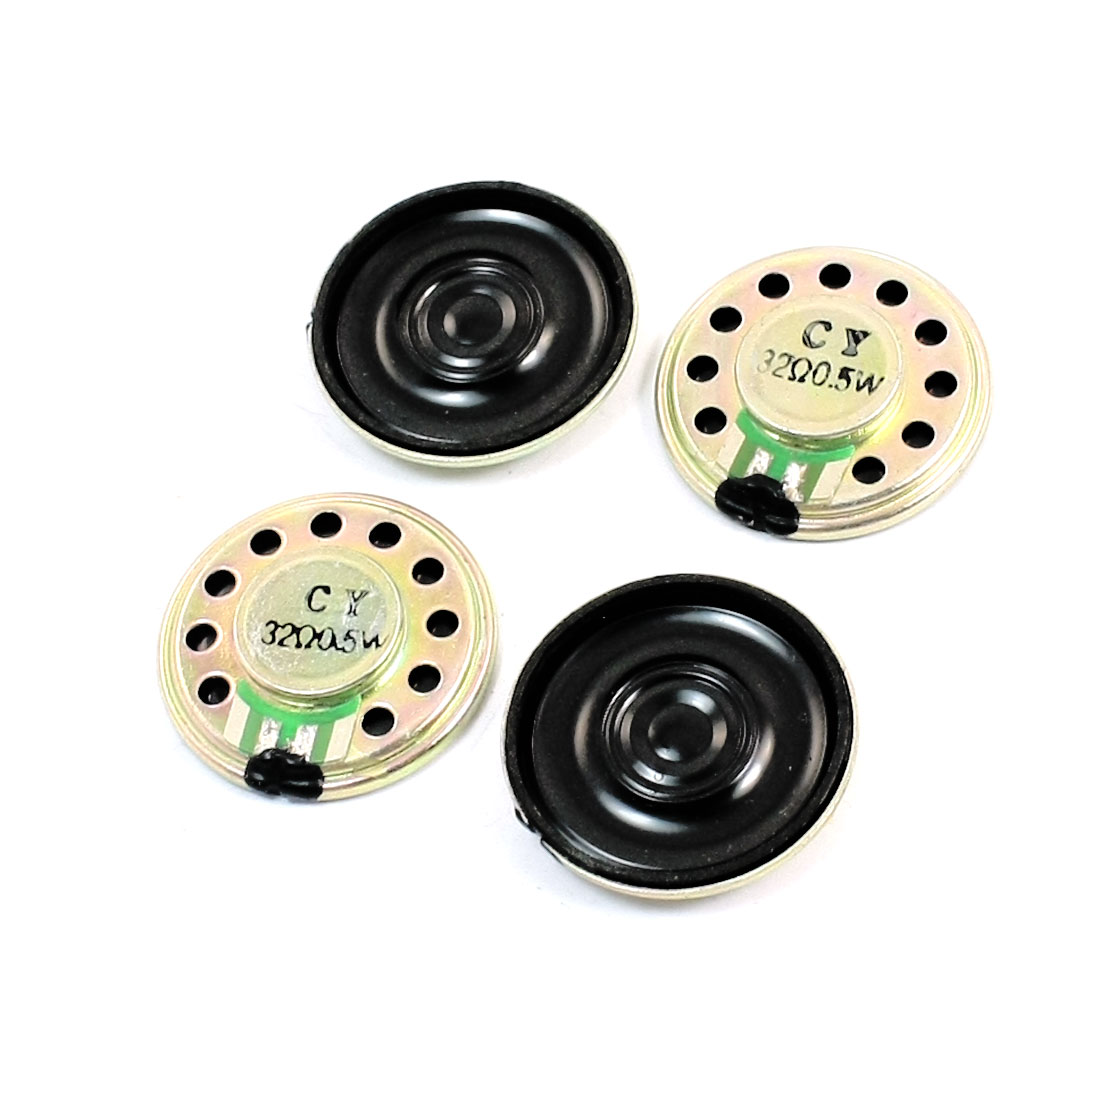 4Pcs 0.5W 32 Ohm 28mm Dia Round Metal Internal Magnet Electronic Toys Music Player Speaker Loudspeaker